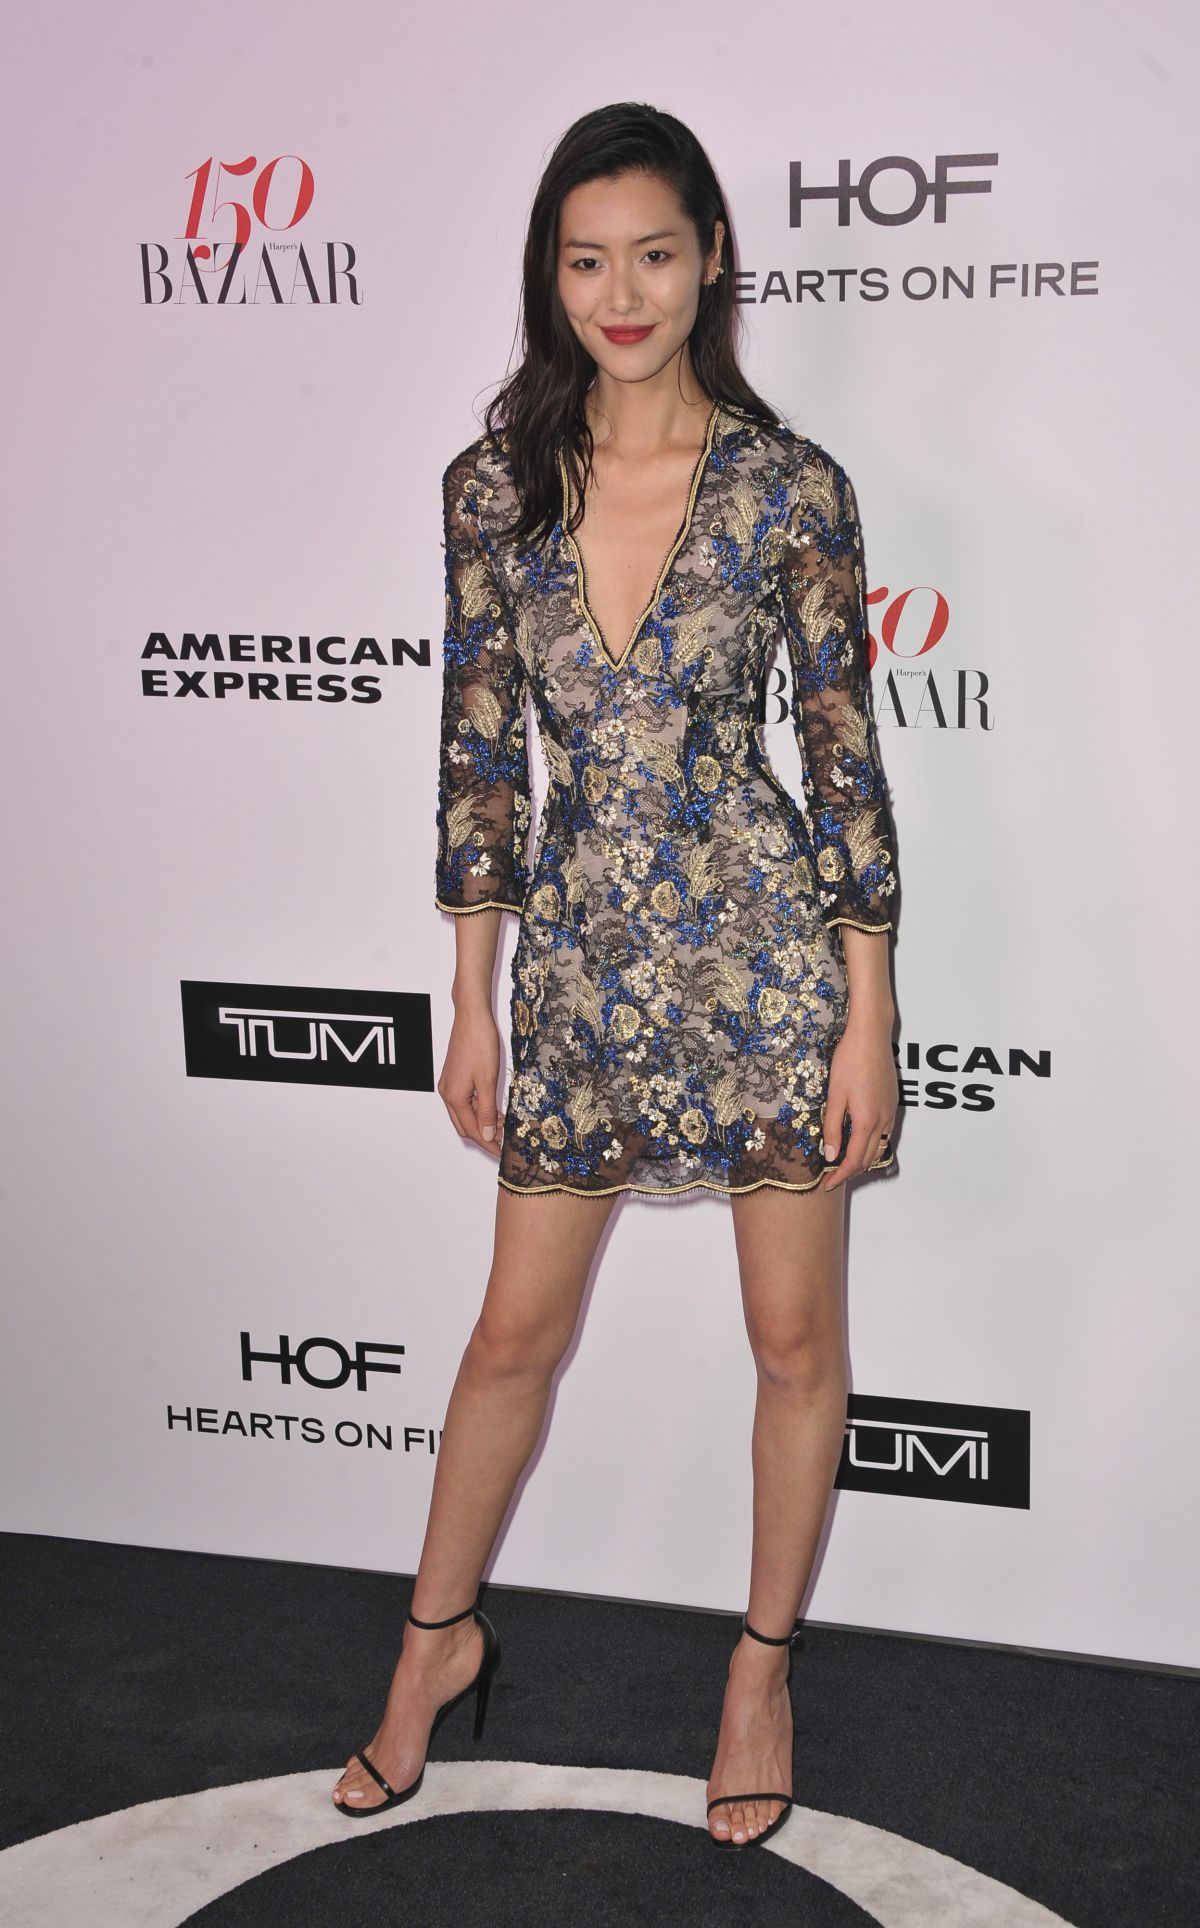 LIU WEN at Harper's Bazaar 150 Most Fashionable Women Party in Hollywood 01/27/2017